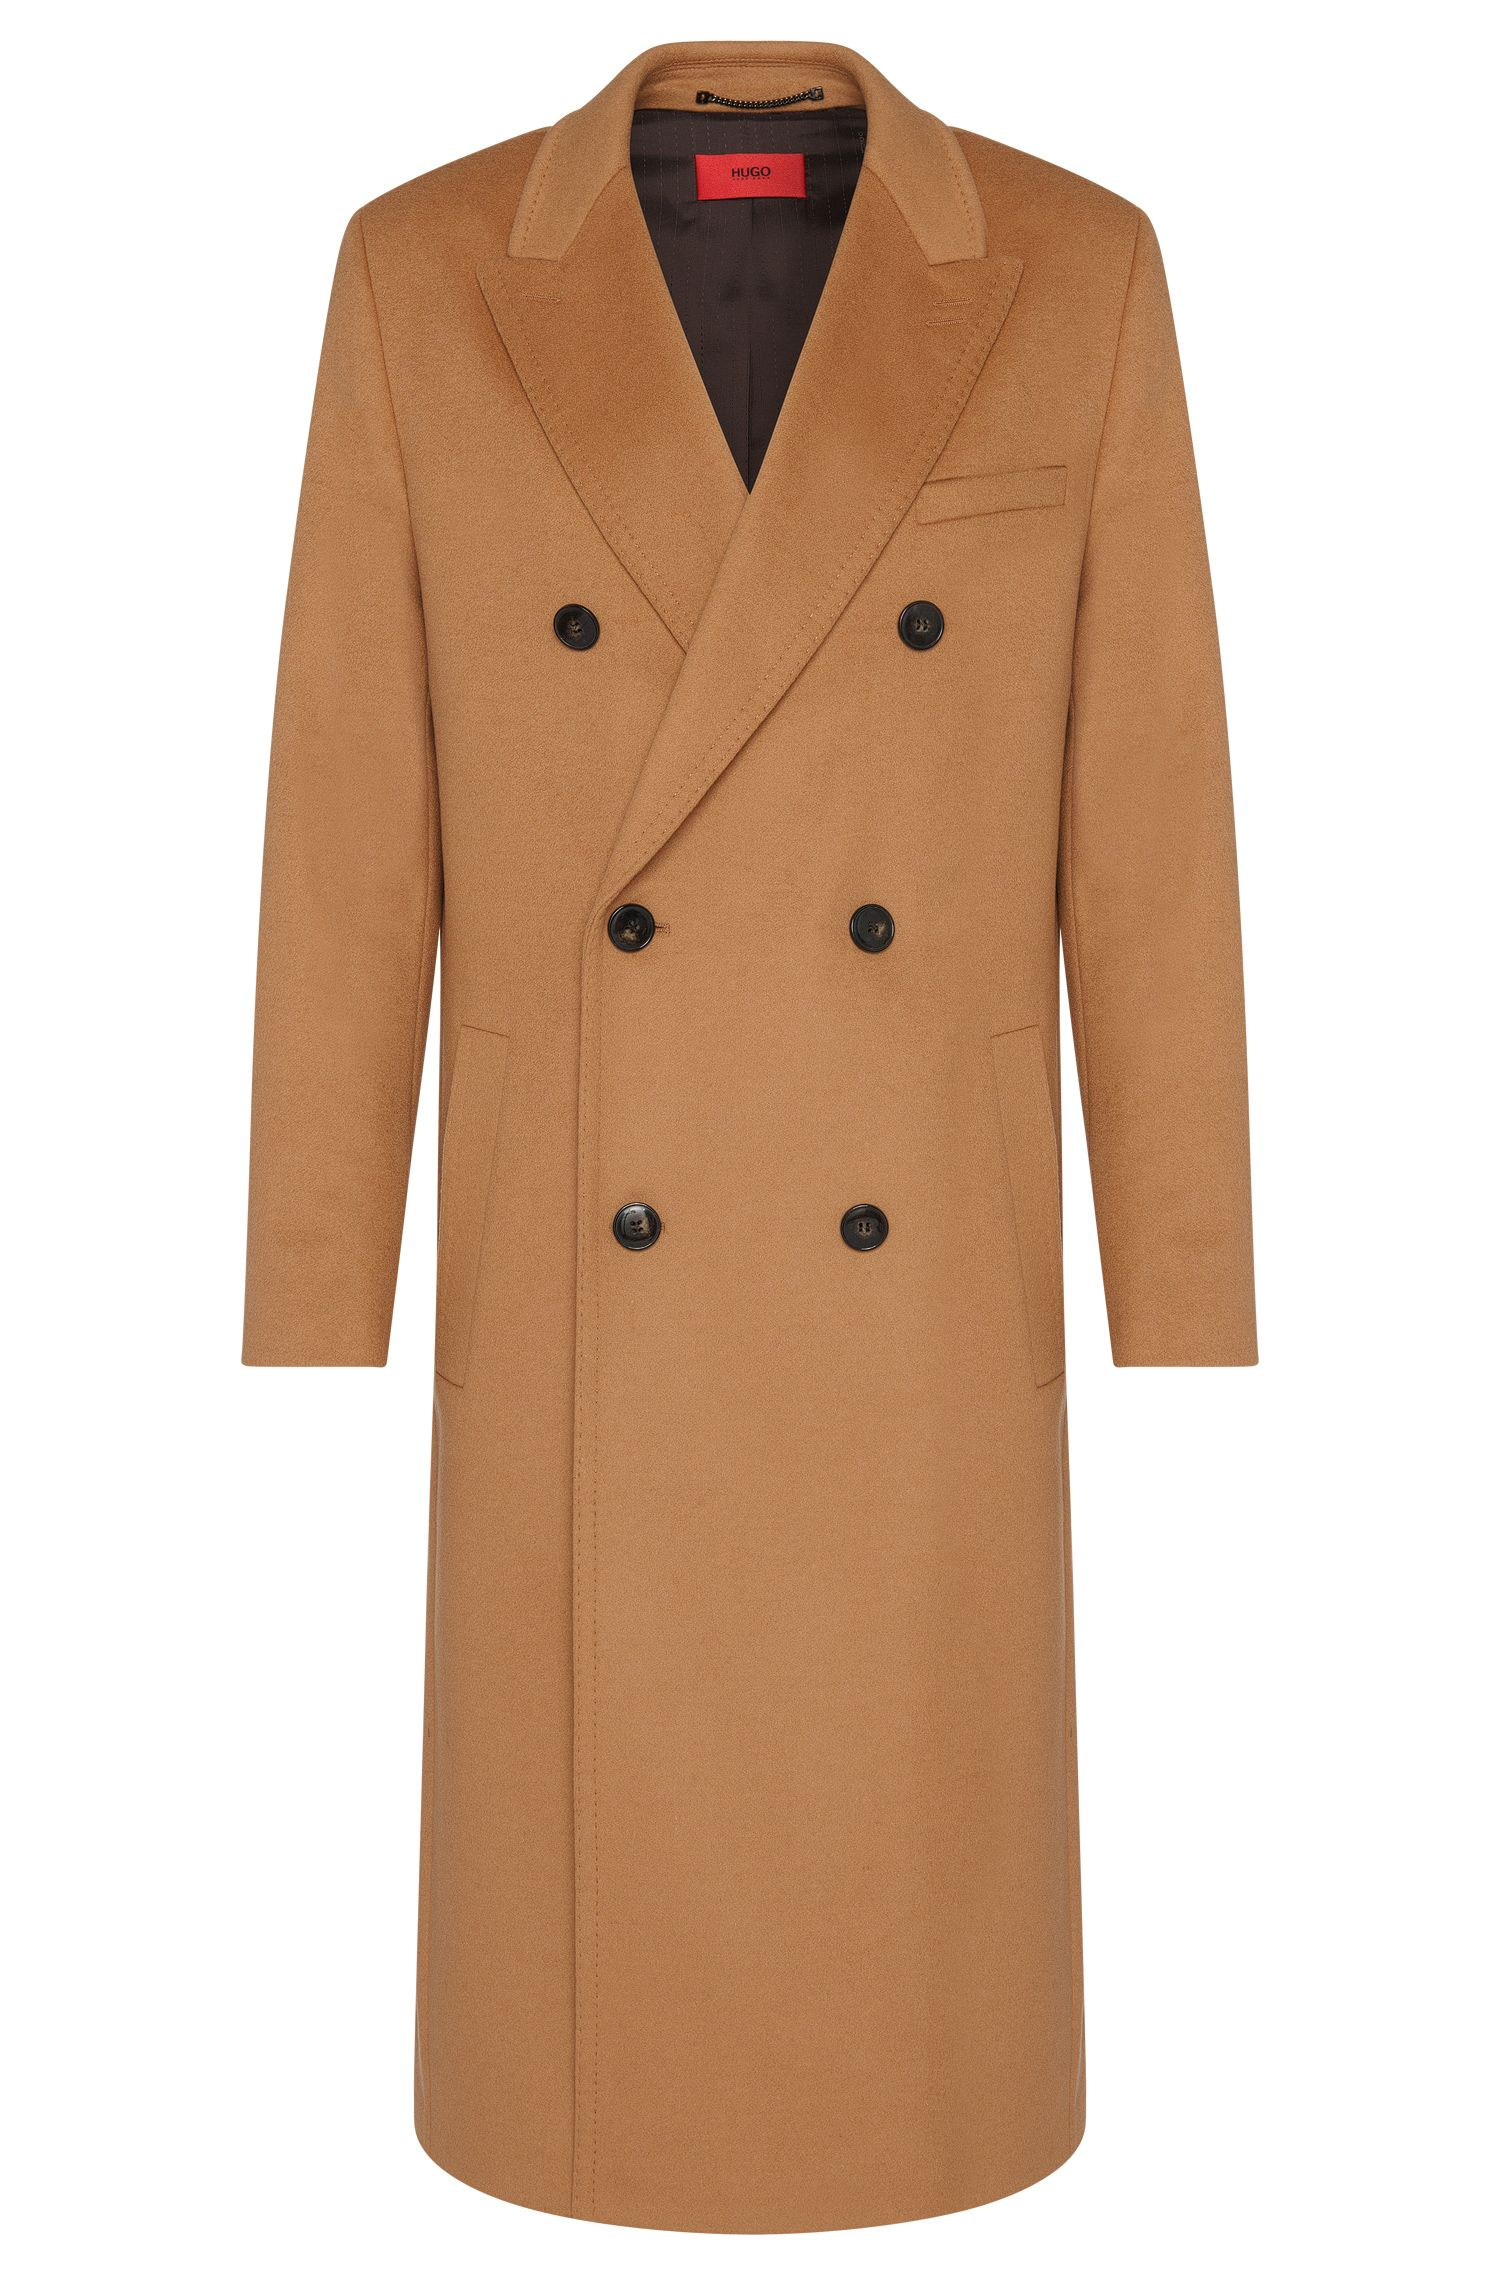 'Melox' | Virgin Wool Cashmere Coat